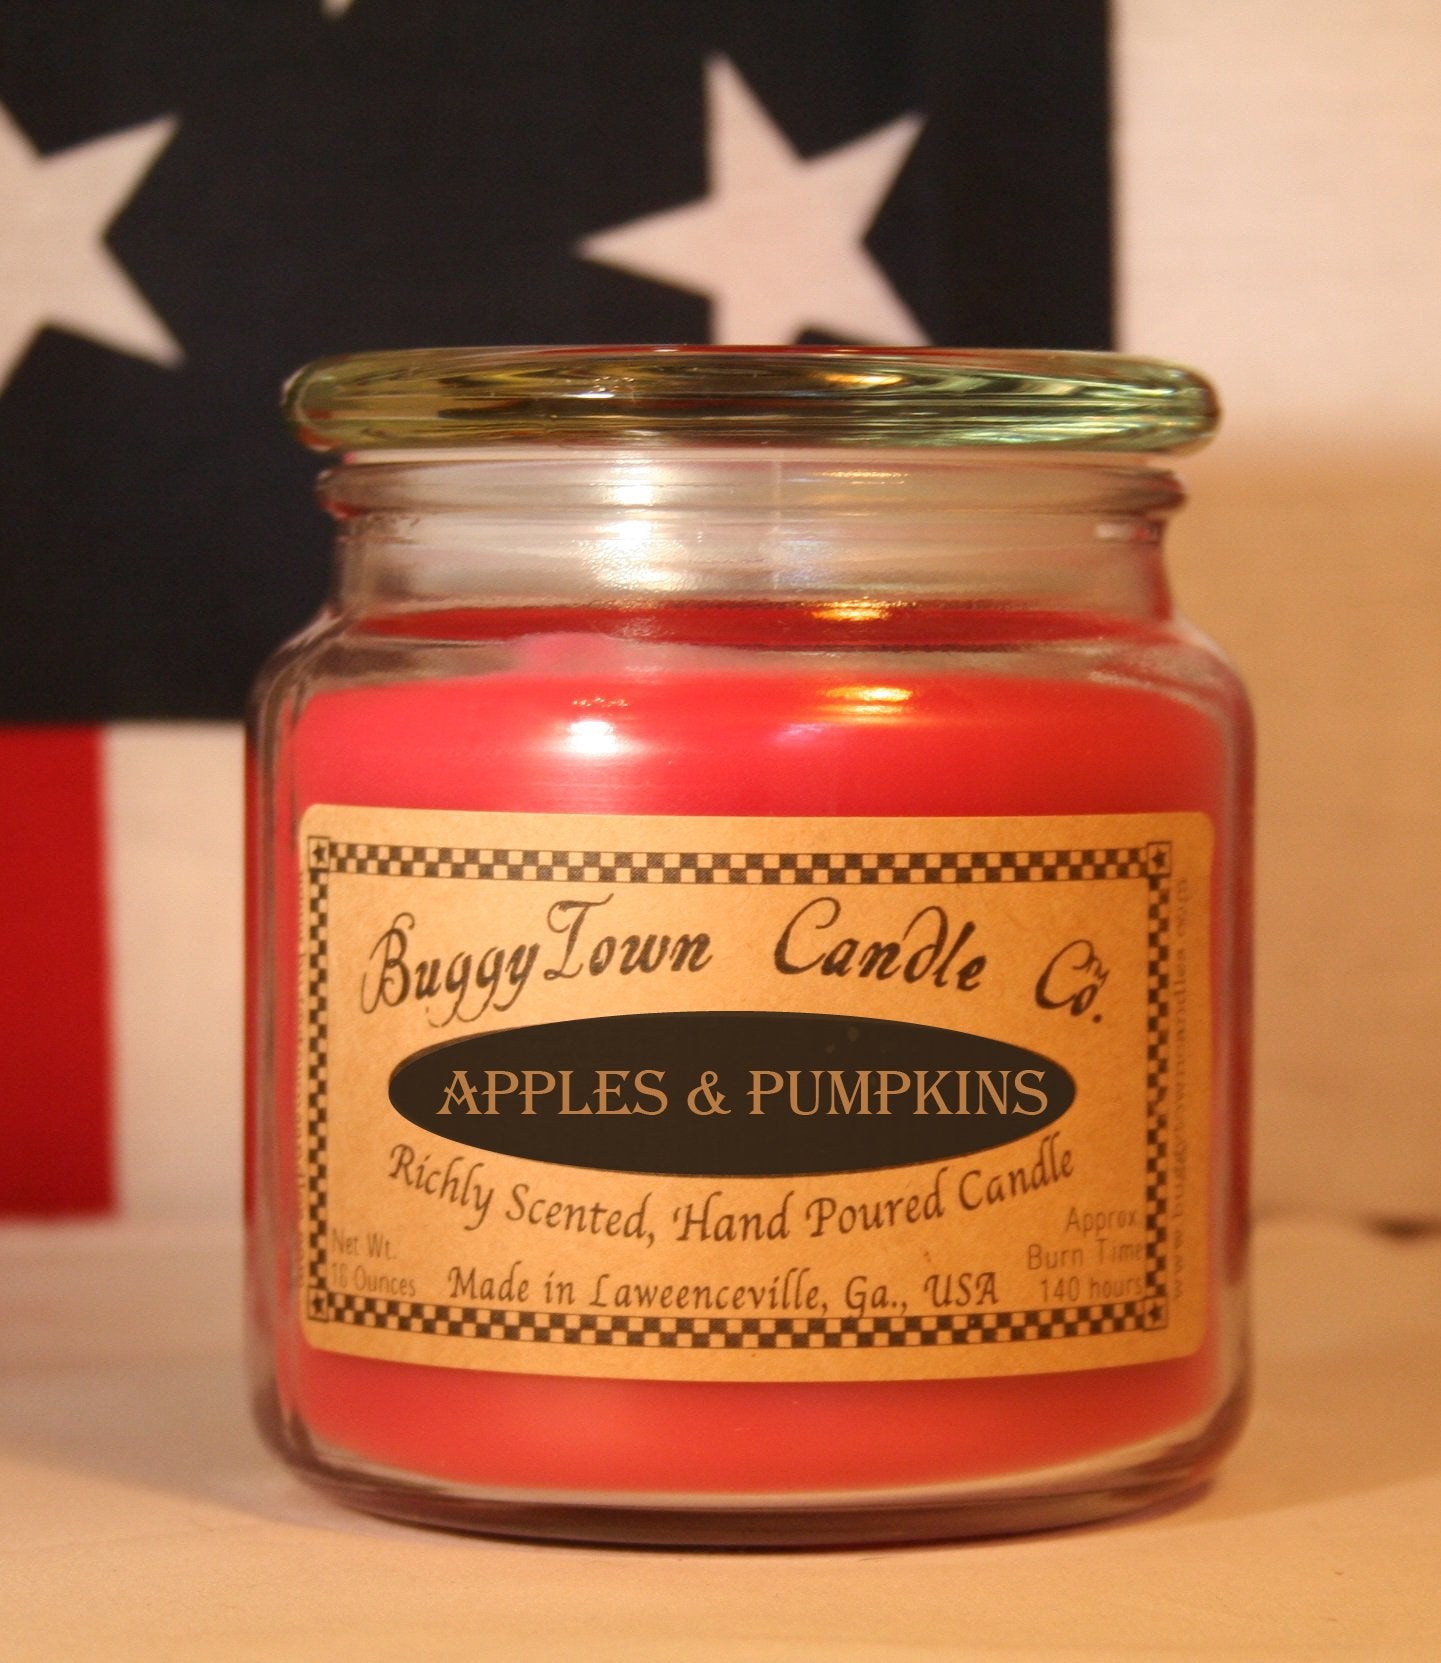 Apples & Pumpkins Candles